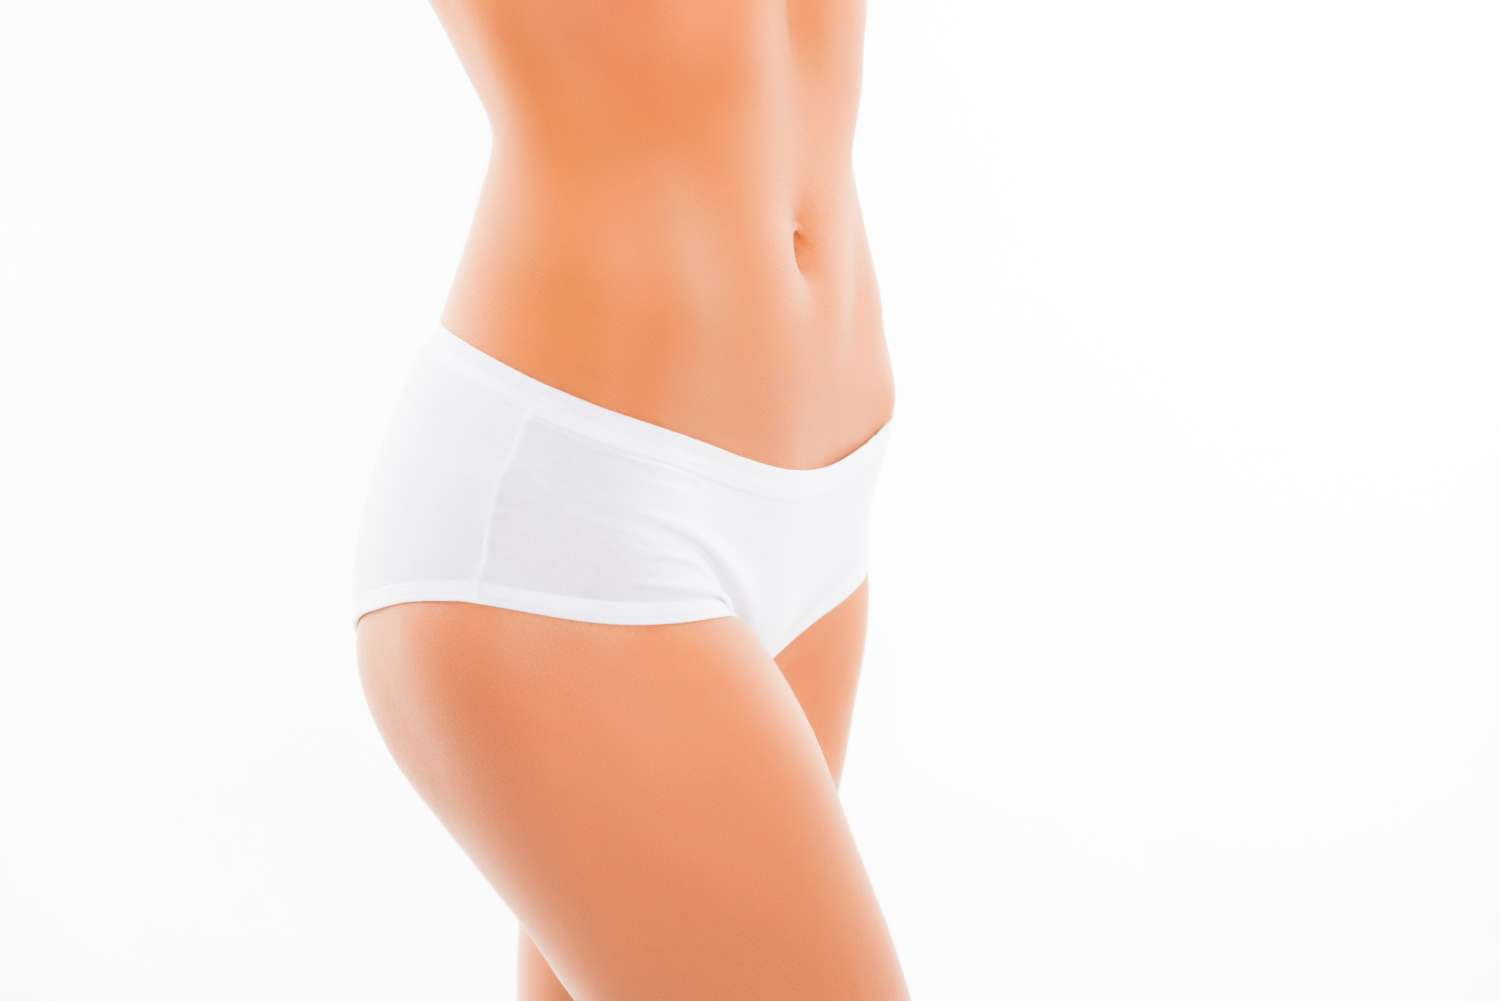 The best technique for buttock augmentation